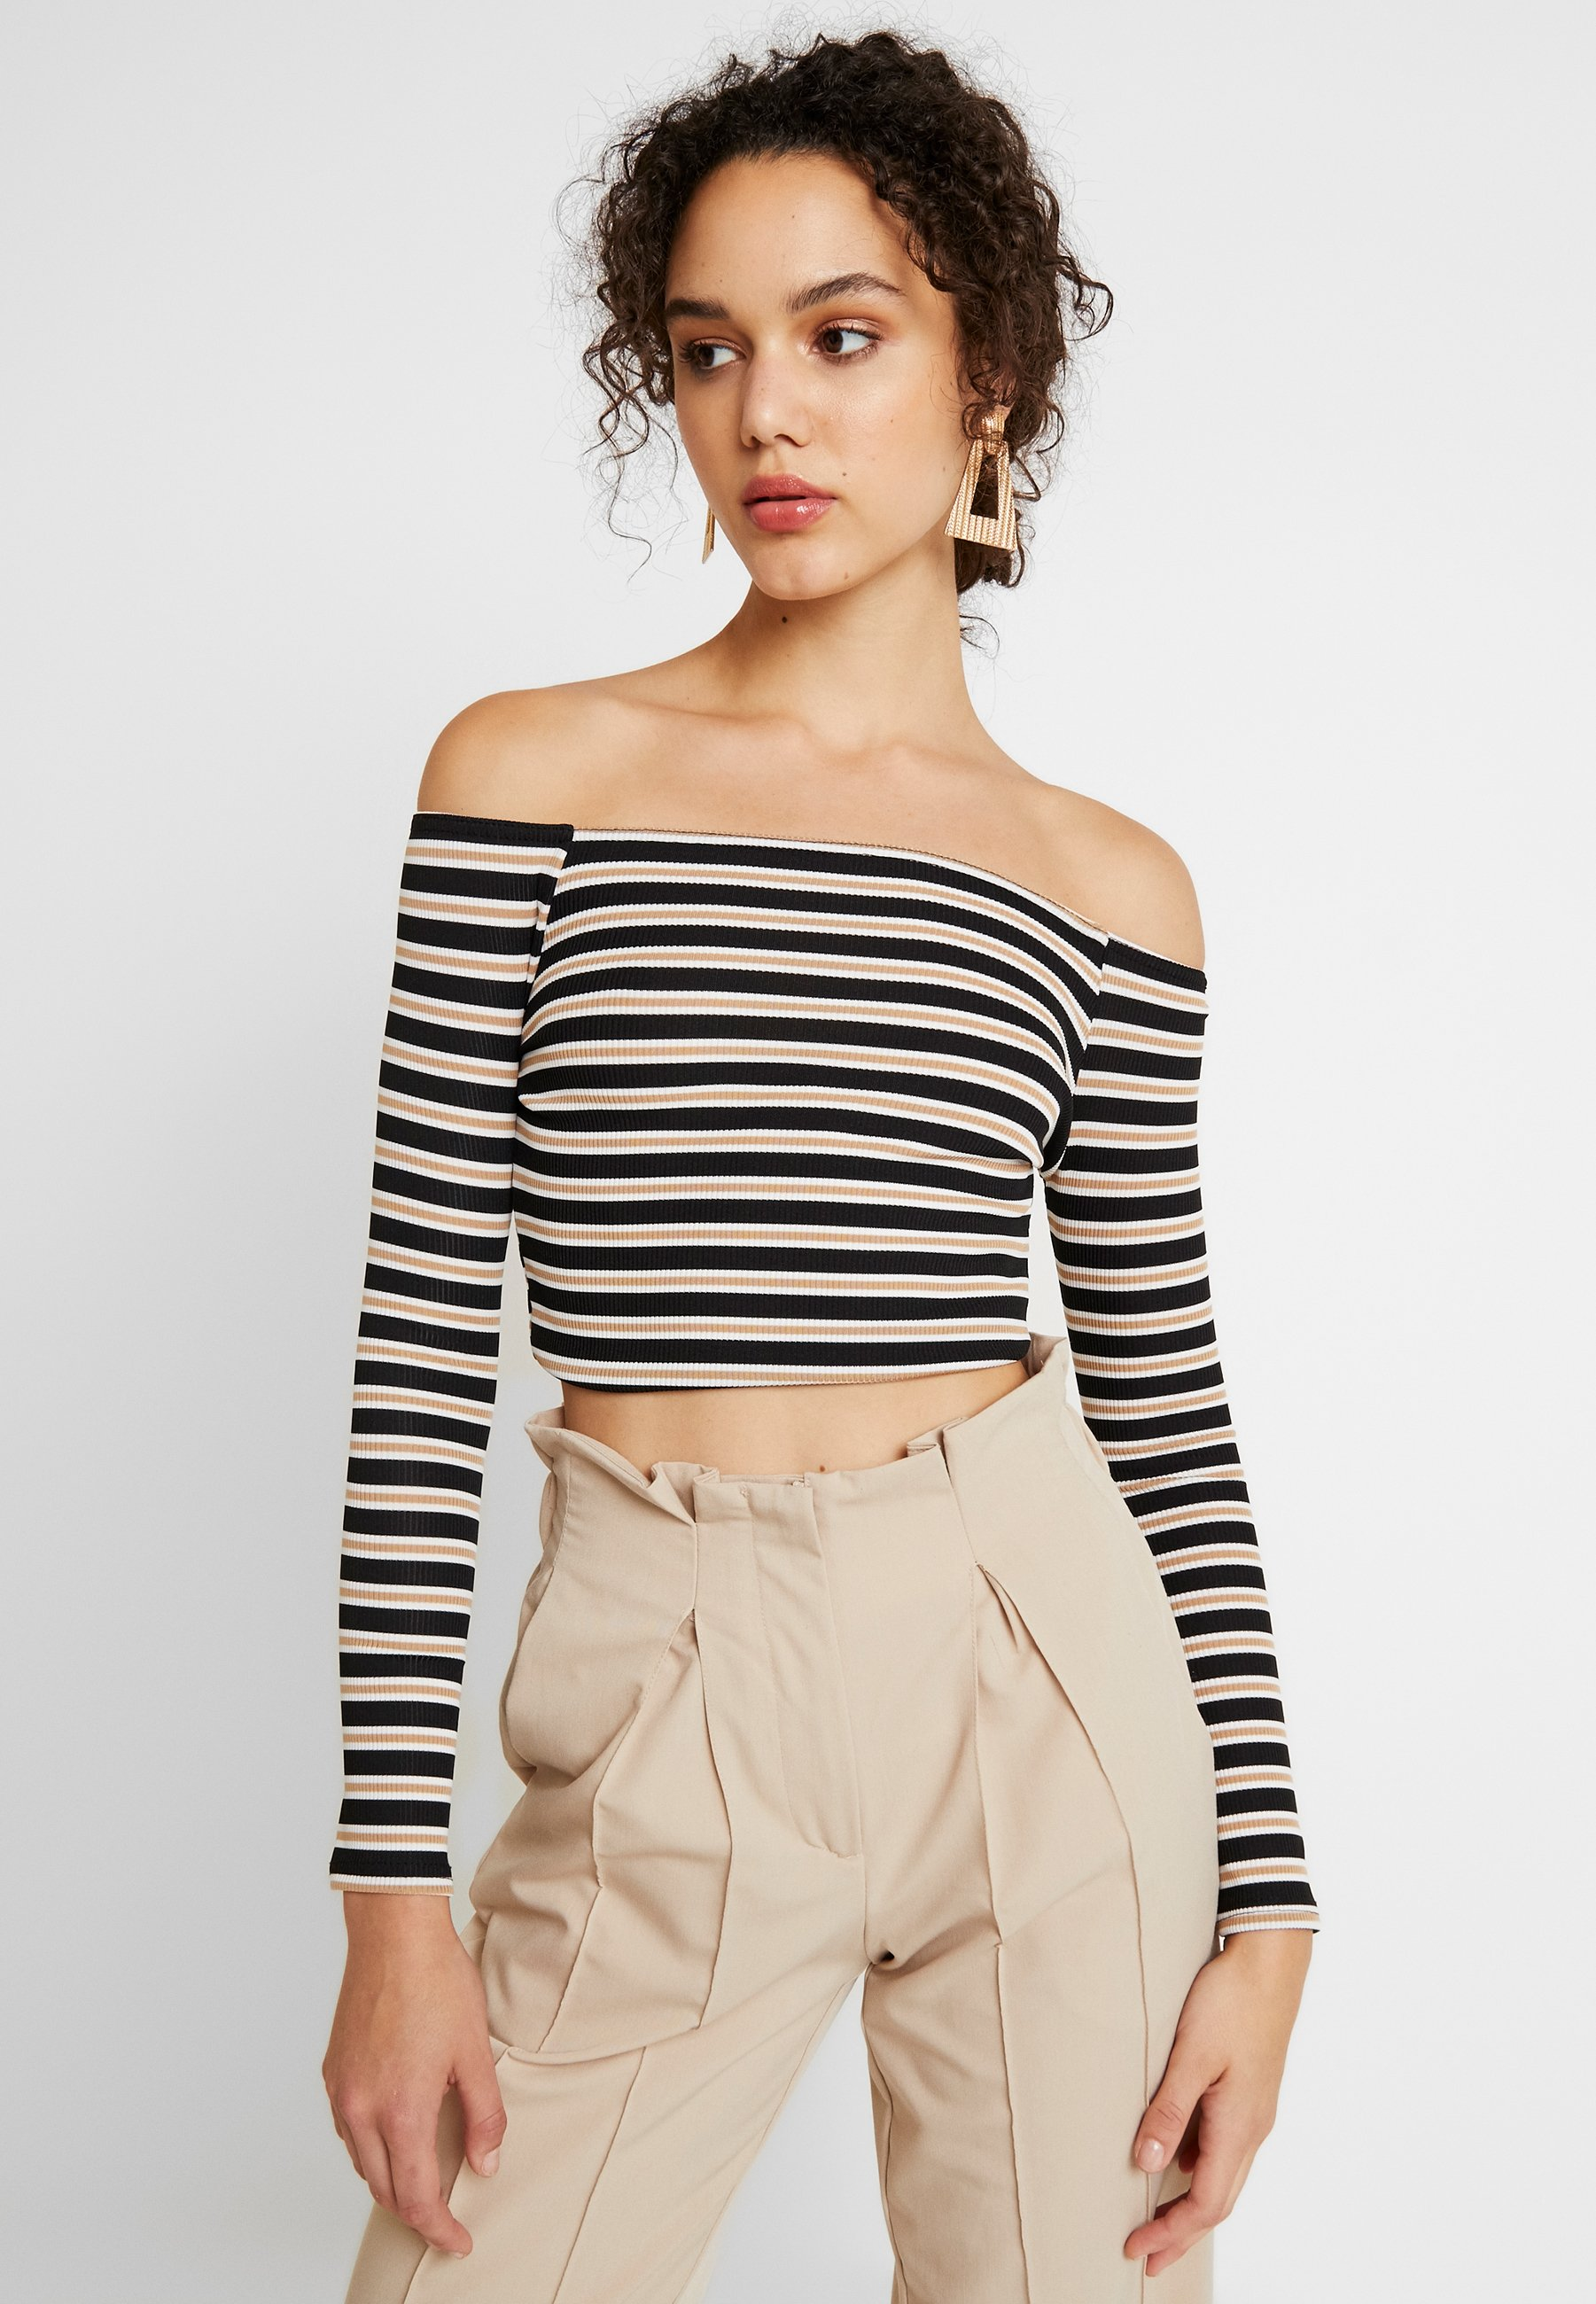 Missguided Bardot shirt Manches Striped Black À CropT Longues TPiXZkOu